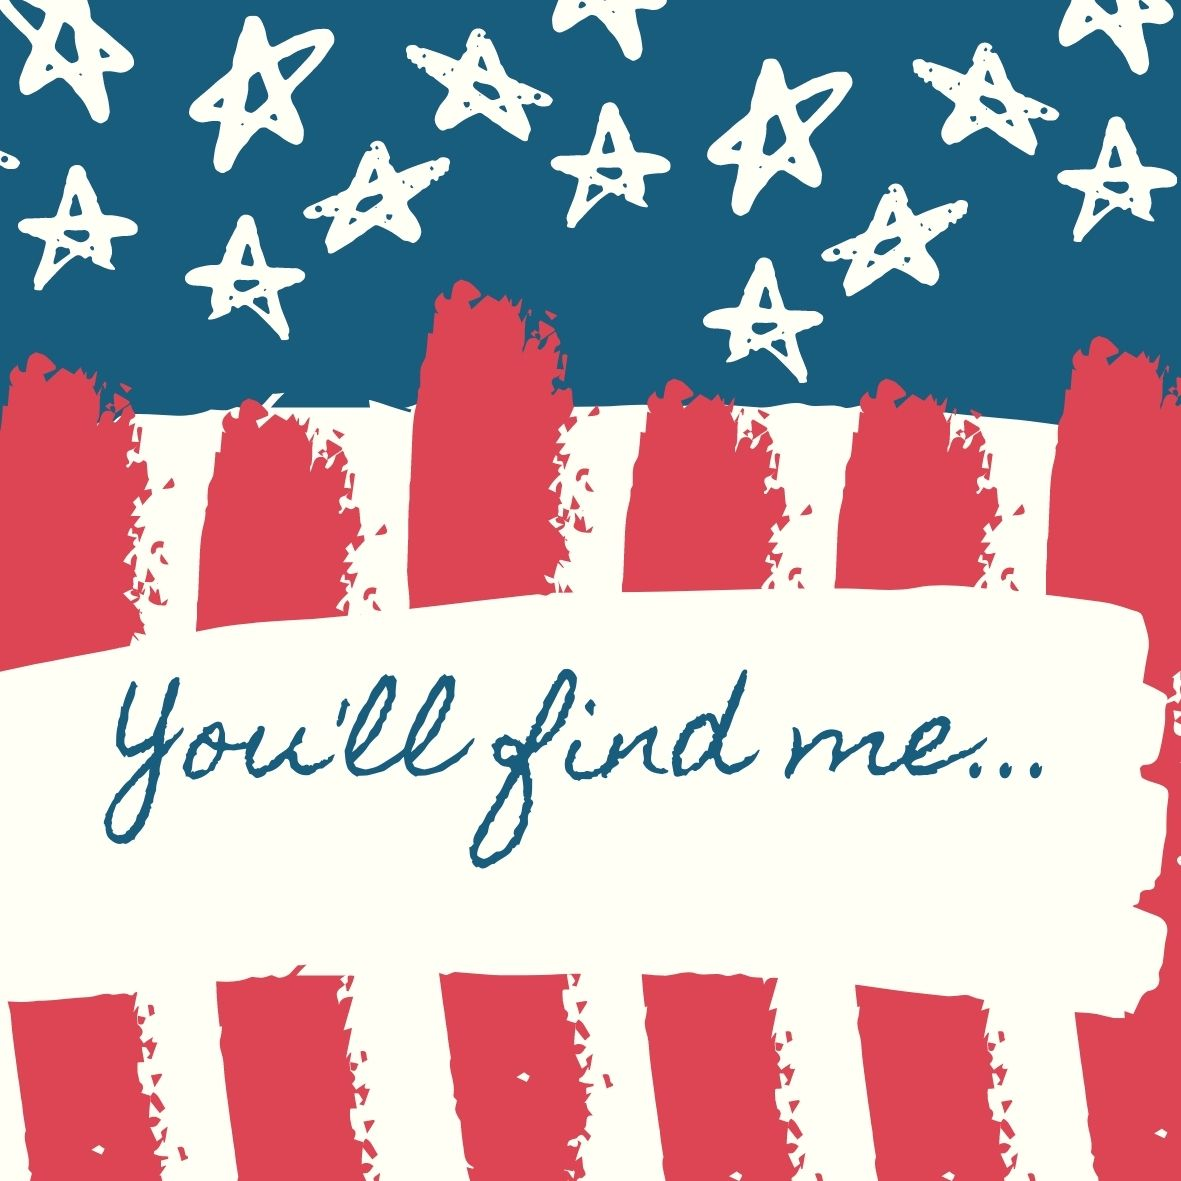 You'll find me...